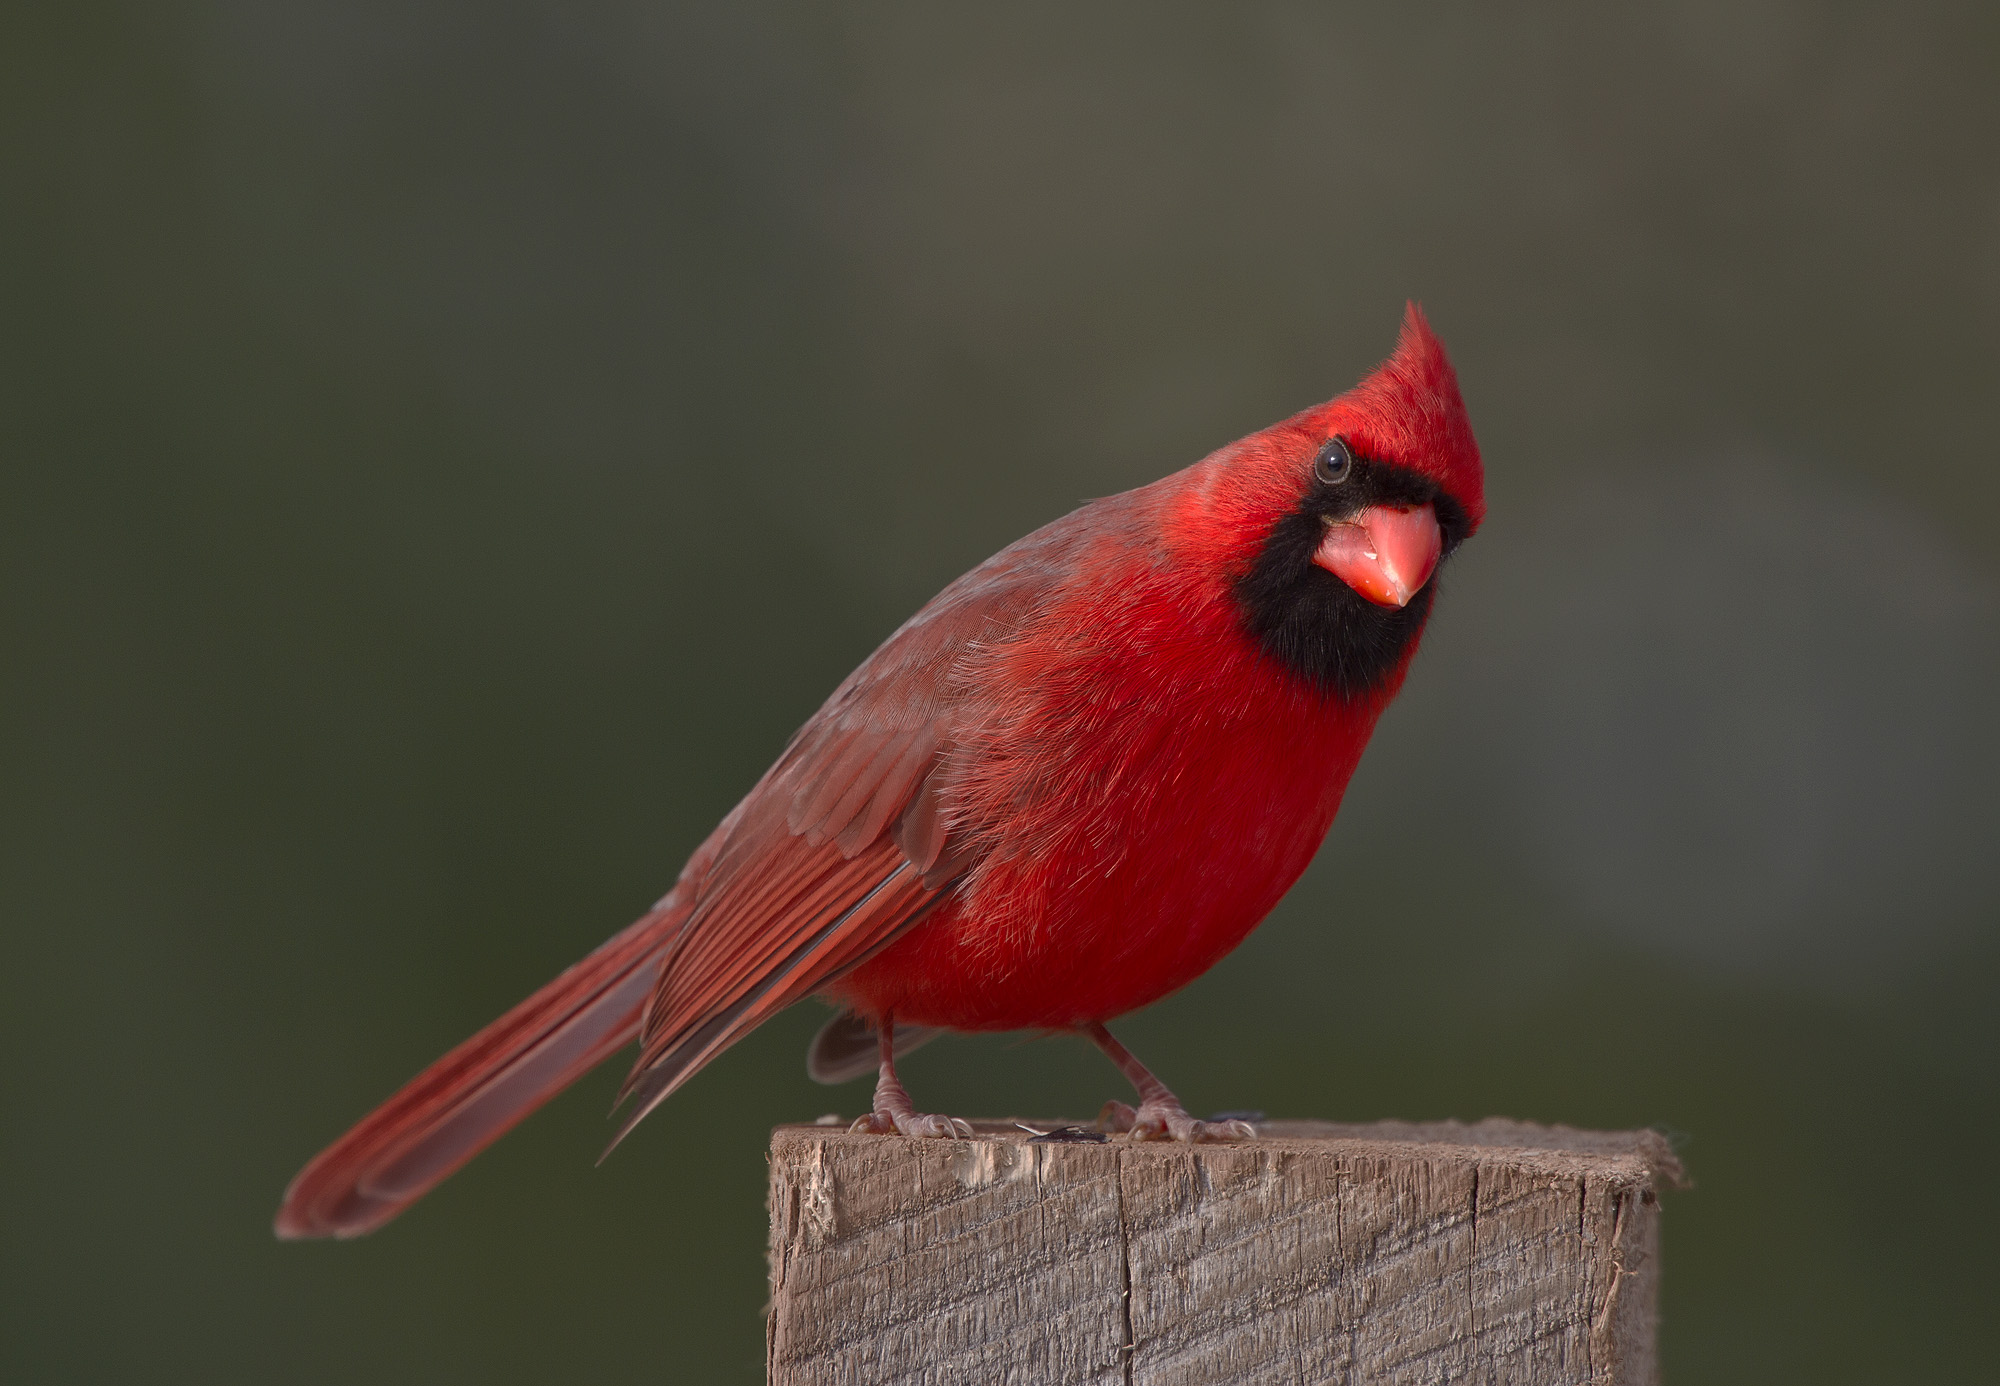 Julie Craves explains what red and orange feathers say ...